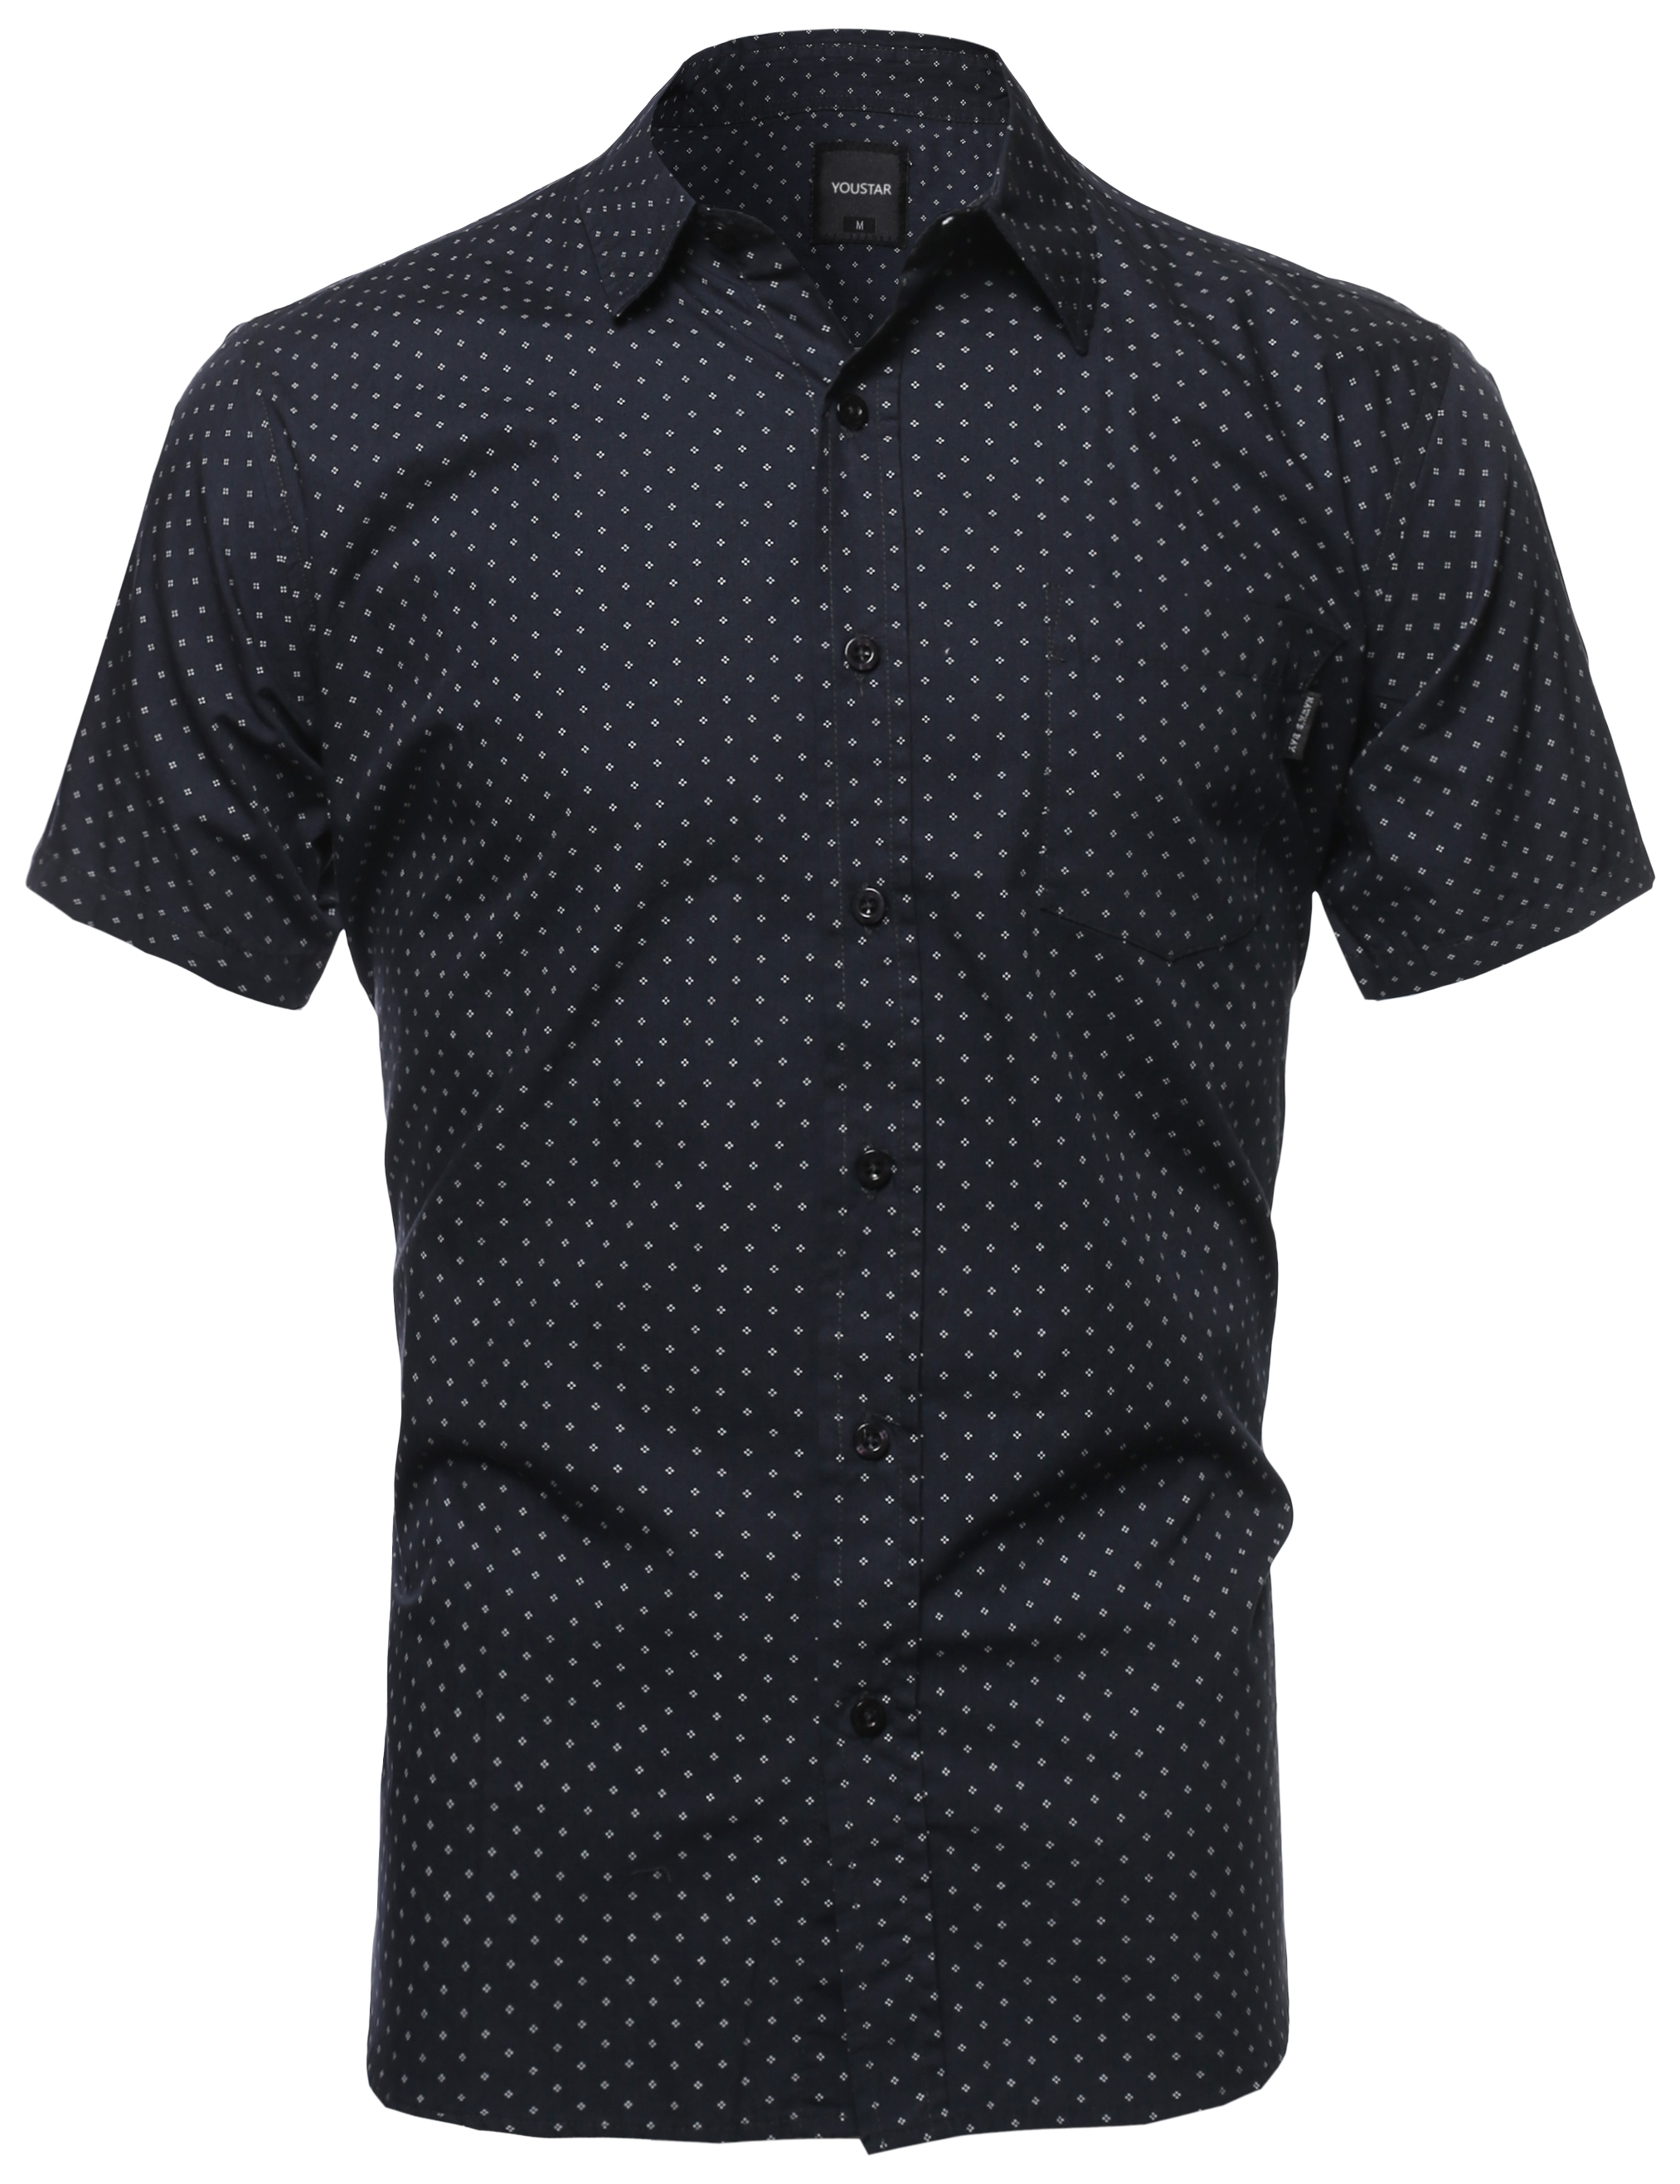 Fashionoutfit men 39 s classic polka dot patterned short for Mens polka dot shirt short sleeve